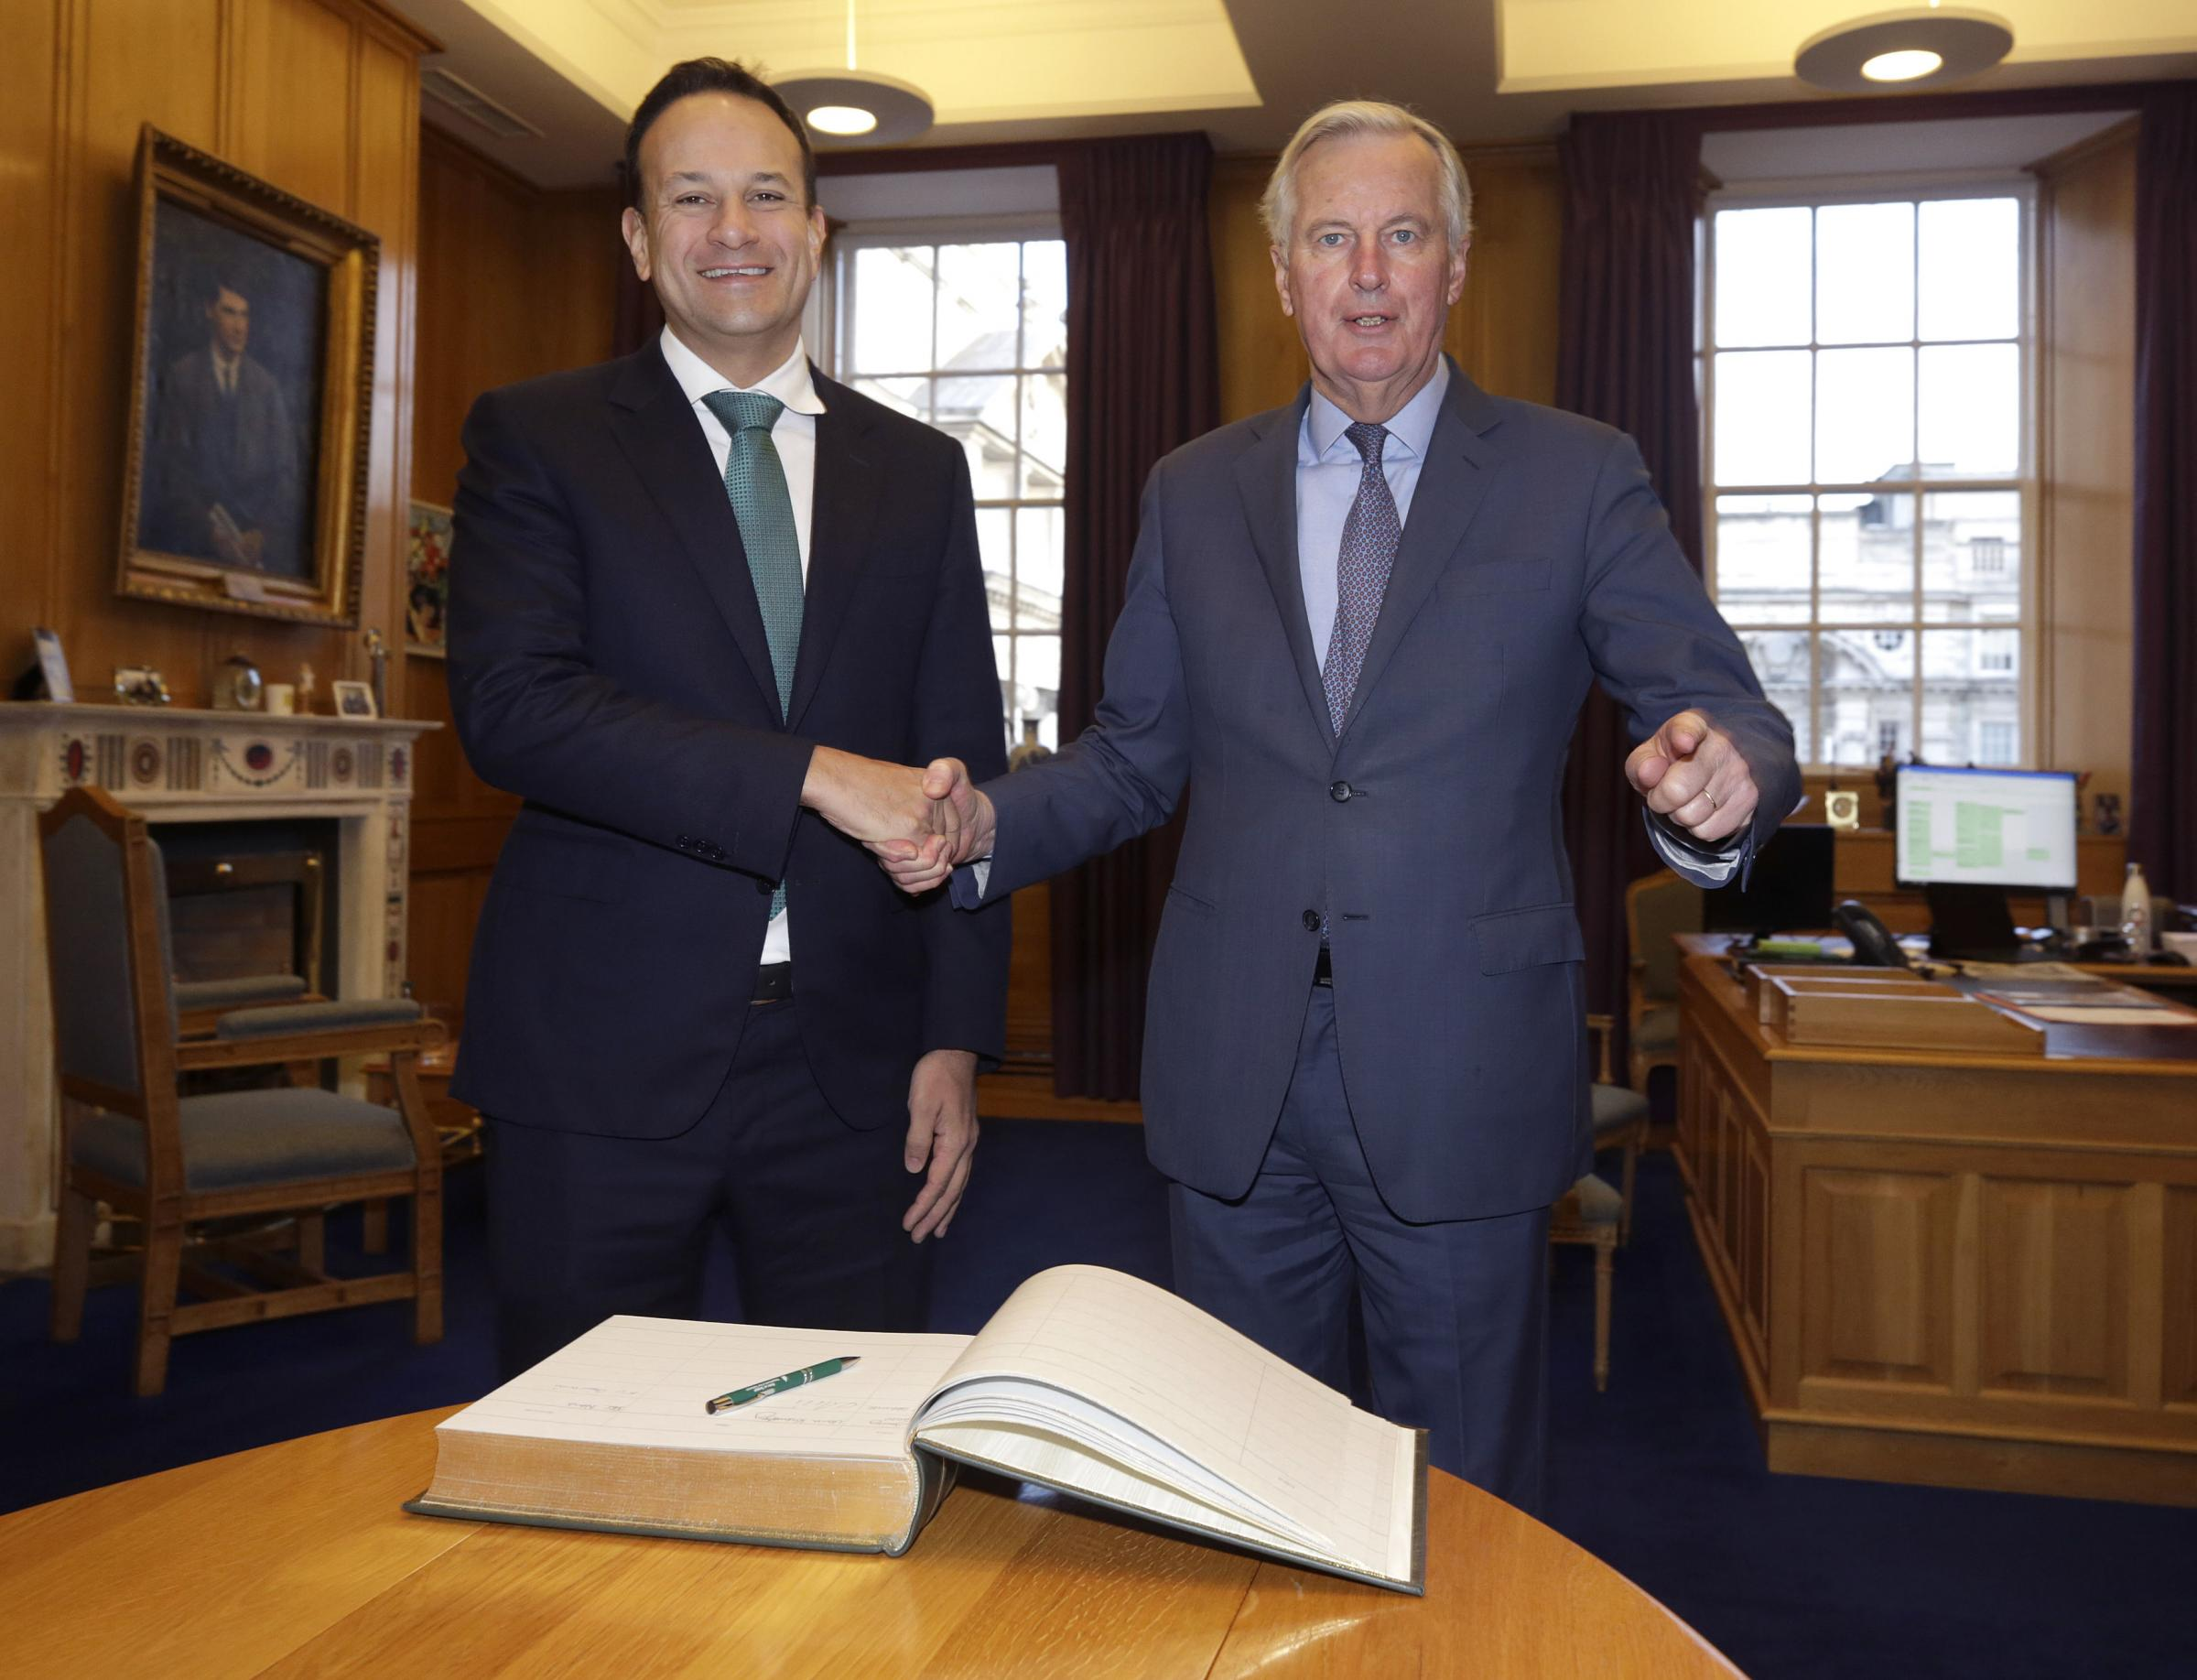 No 10 rejects Leo Varadkar 'trade-off' between access to UK fishing waters and post-Brexit deal on financial services